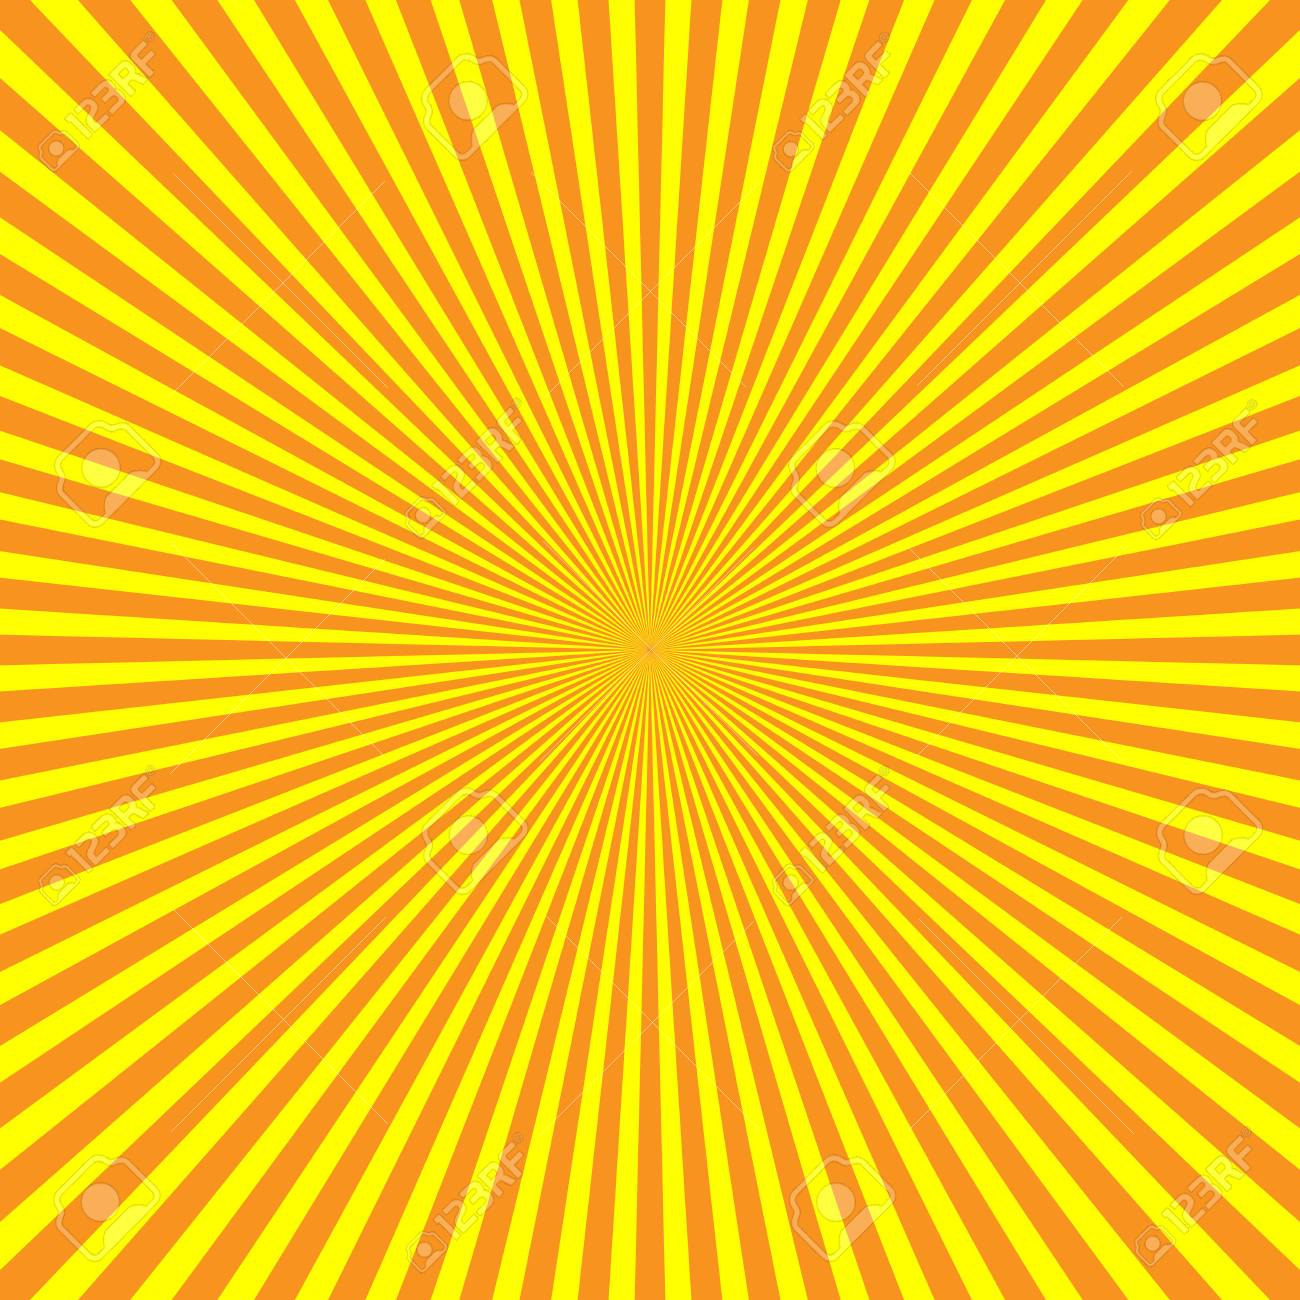 Yellow-orange Rays Of Light In Radial Arrangement. Sunshine Beams ... for Background Pattern Light Orange  193tgx